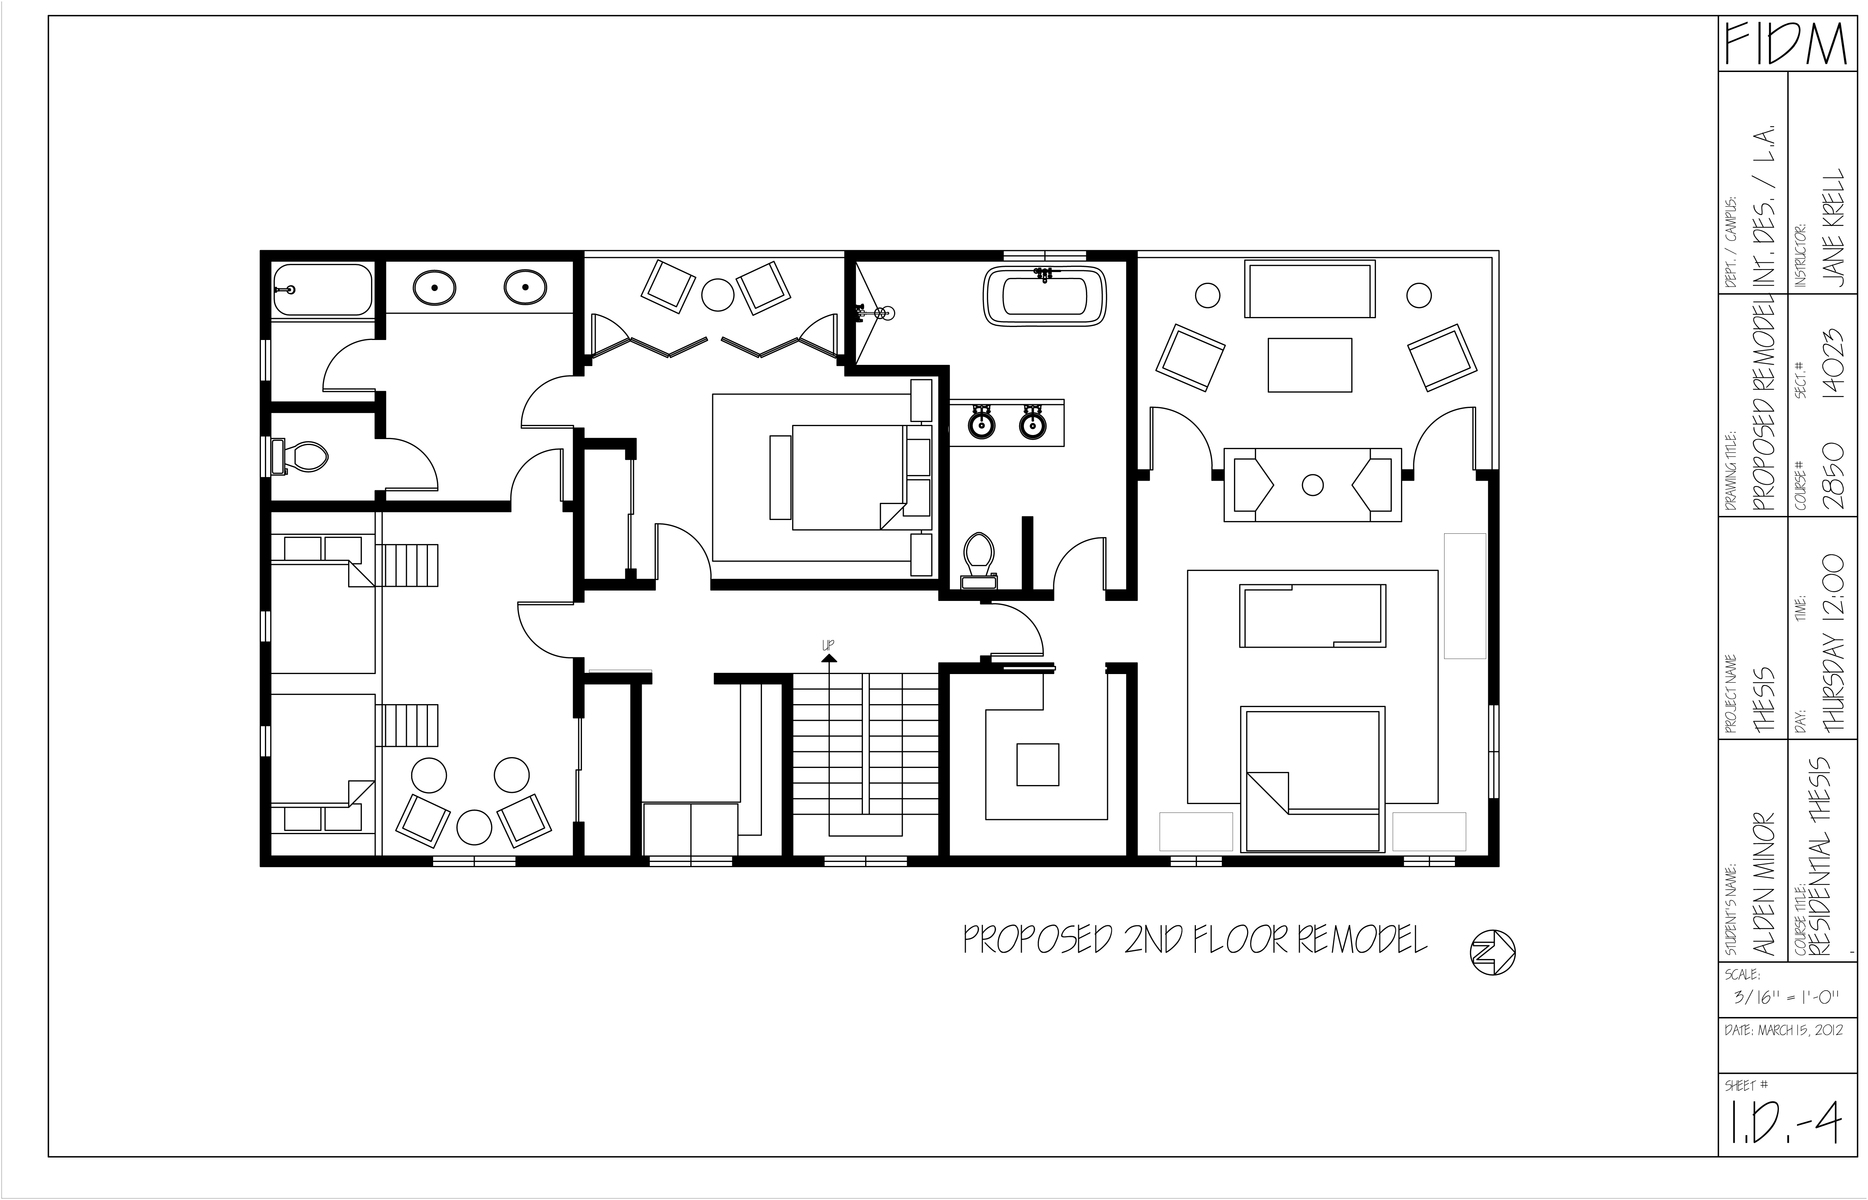 Proposed 2nd Floor Remodel